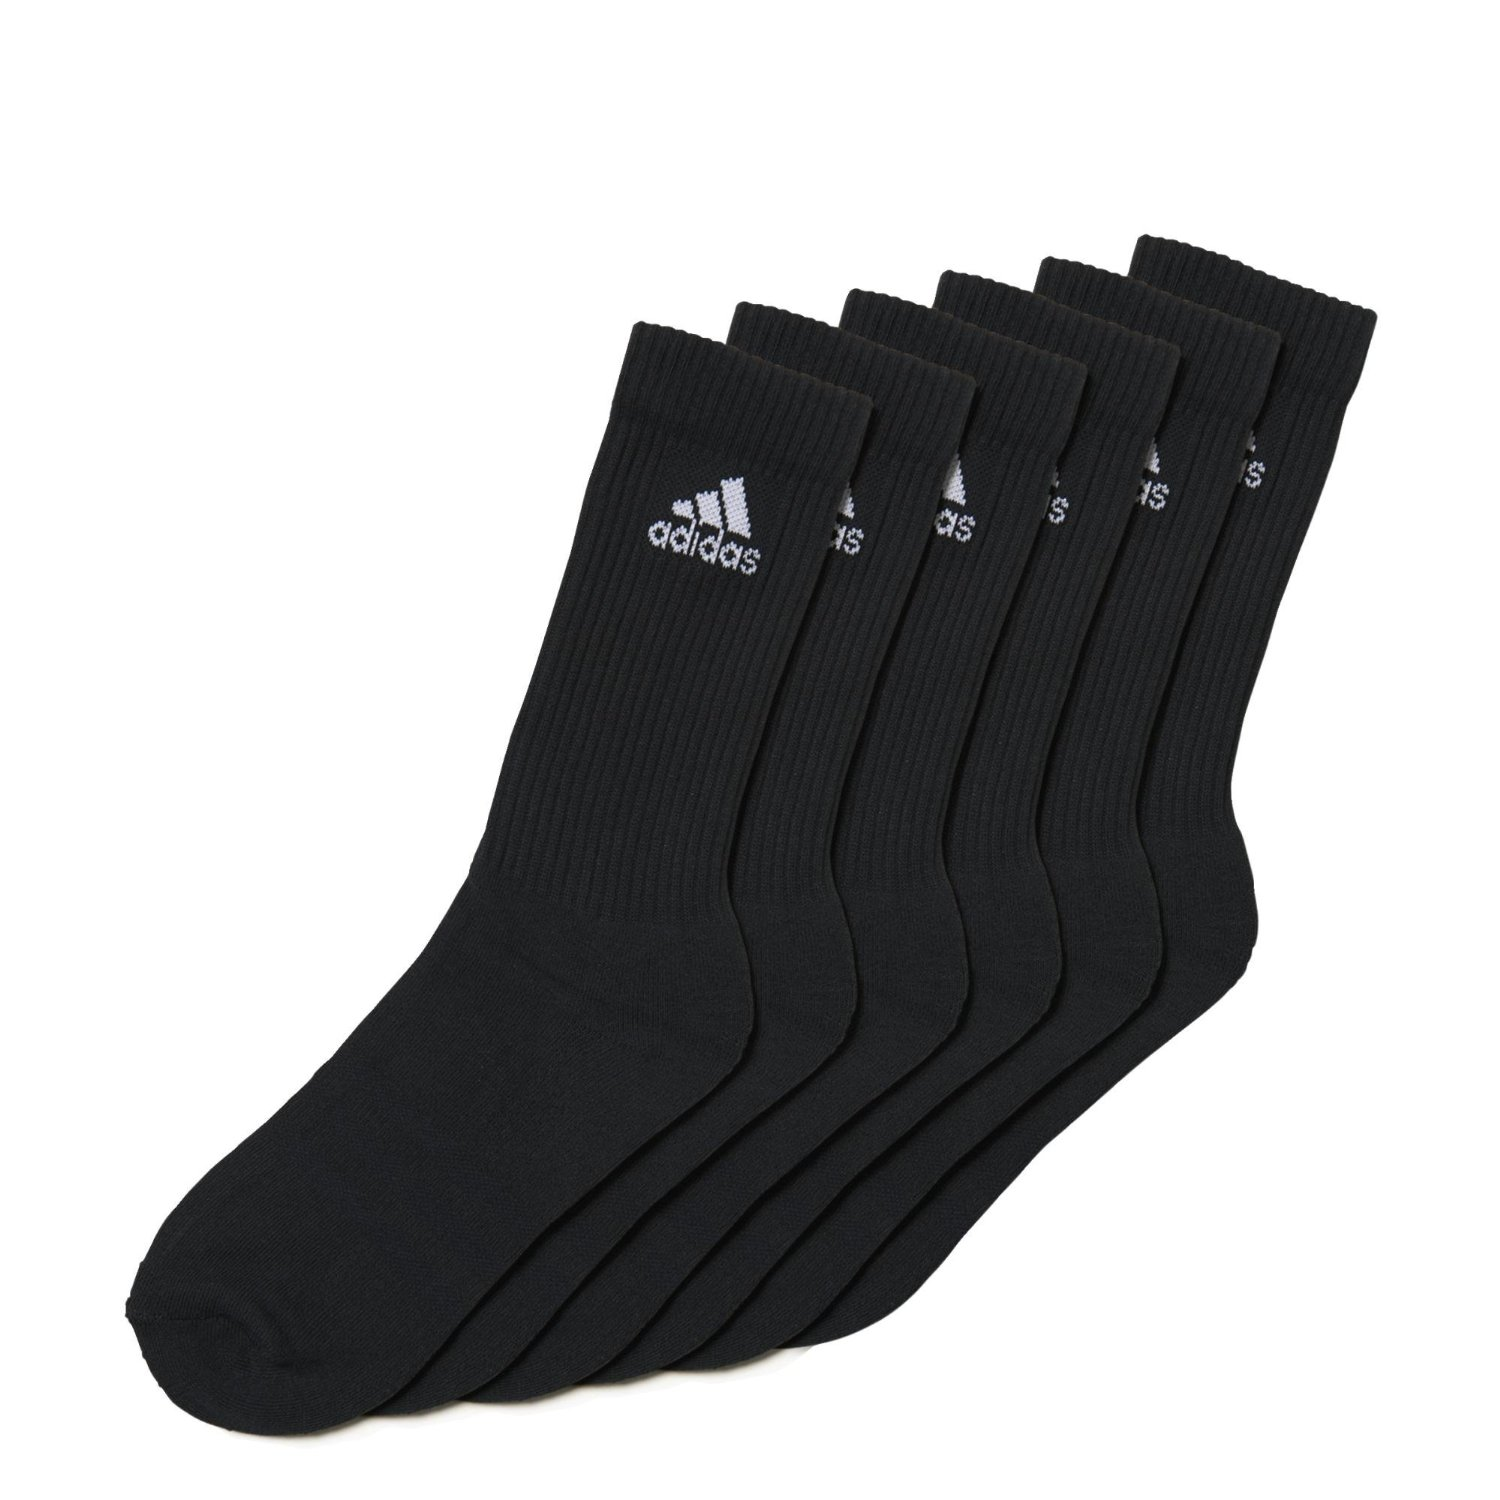 official images great deals reliable quality adidas Unisex Socken 3-Streifen Crew, 6er-Pack | eBay